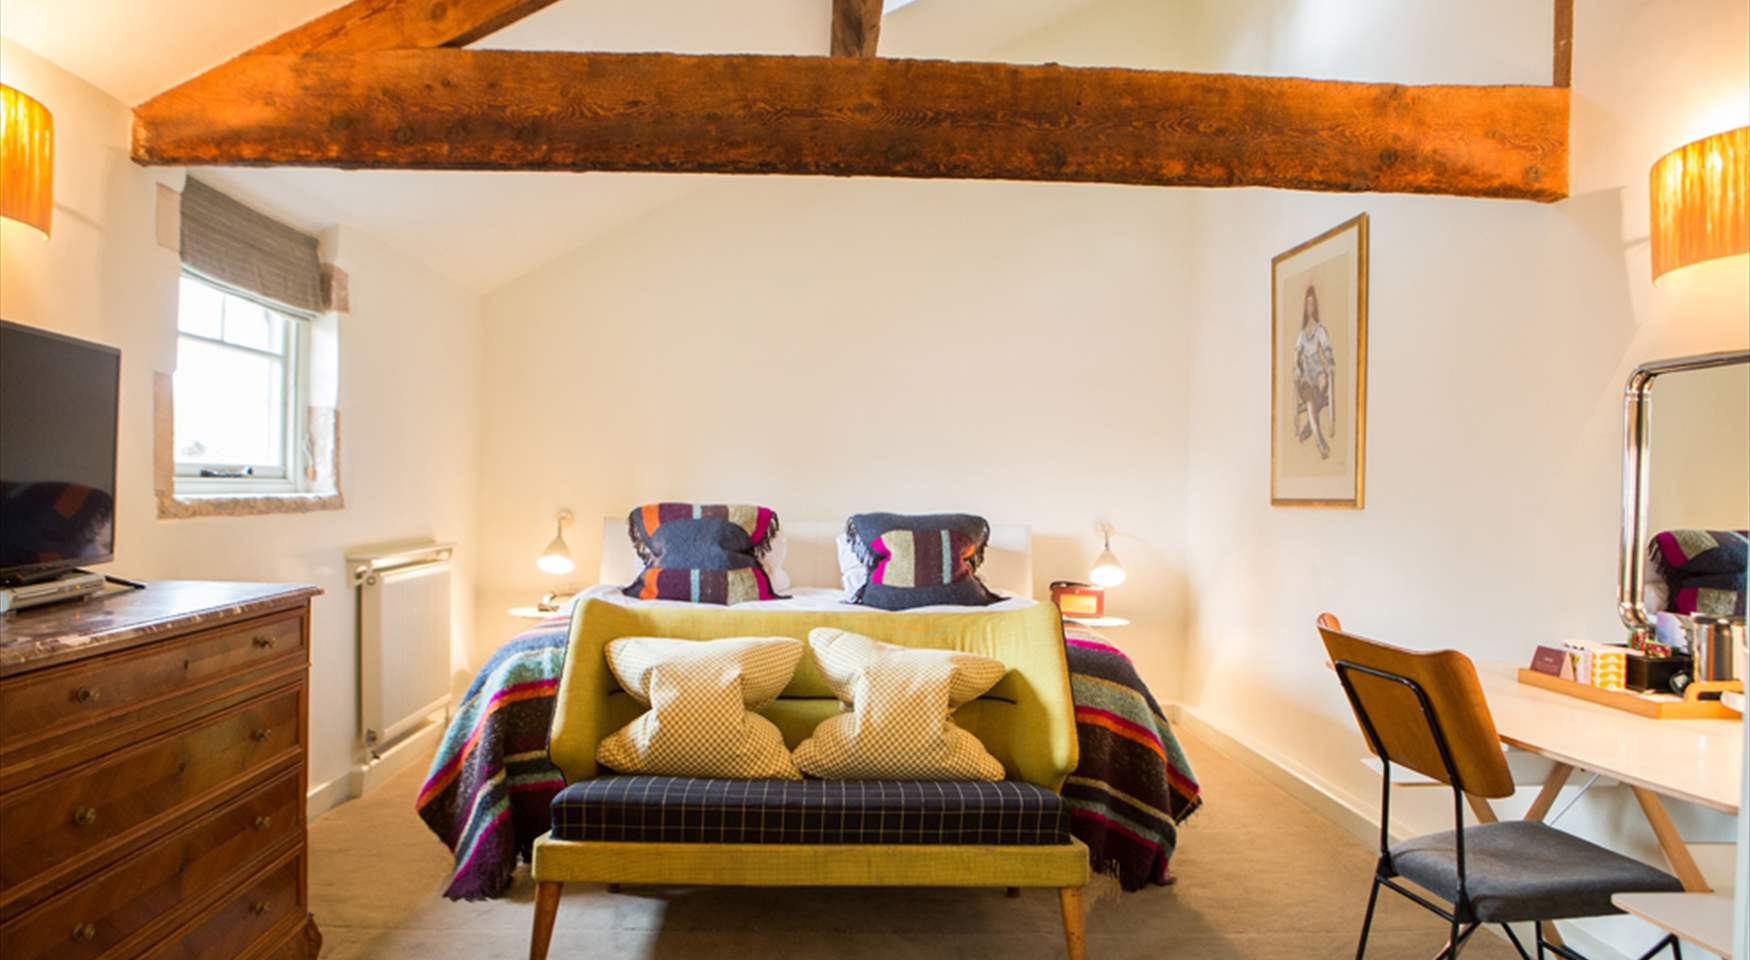 Hotels and accommodation in Wiltshire